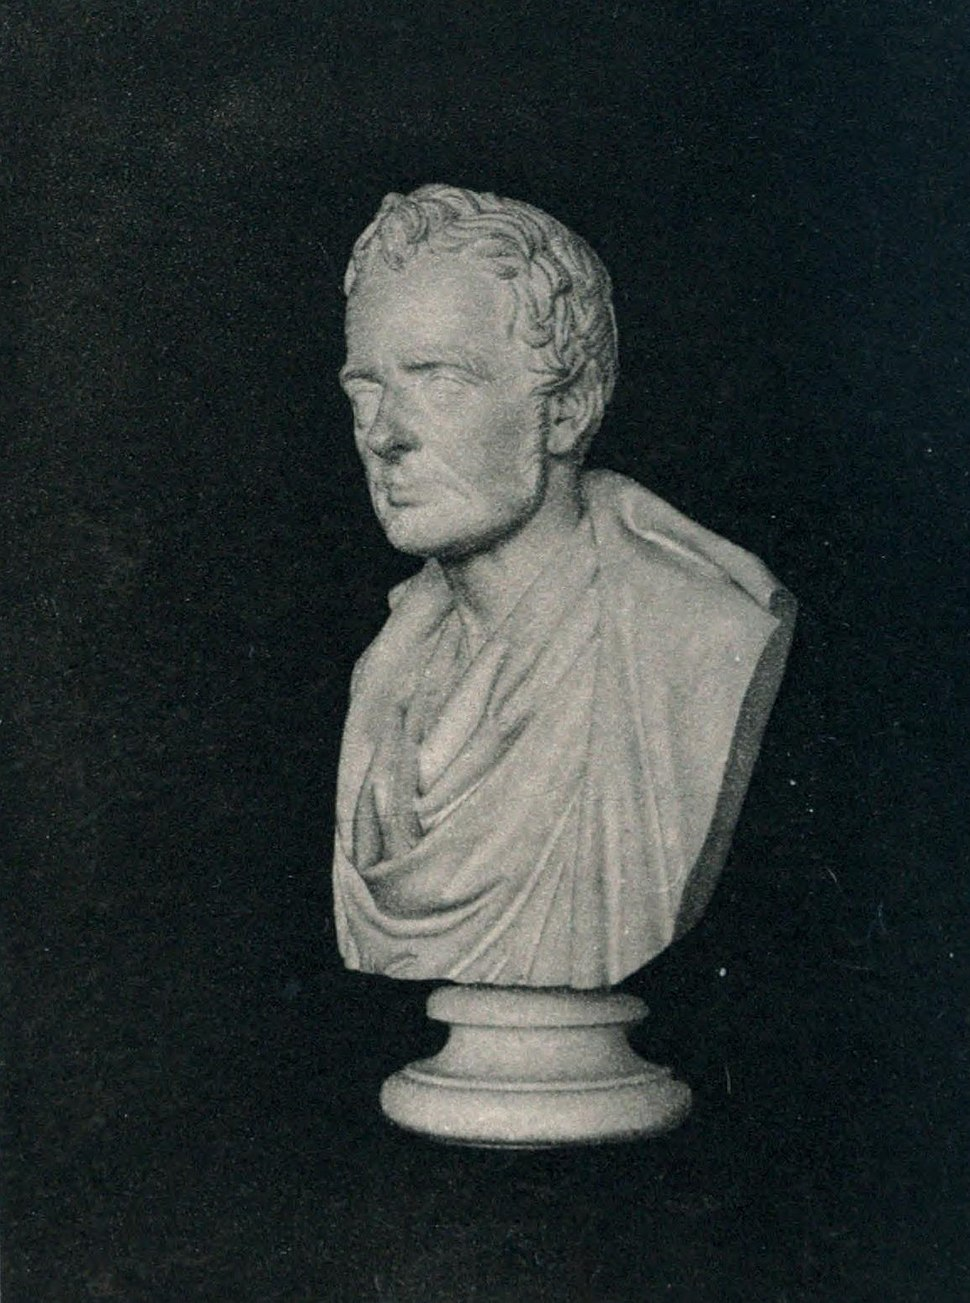 Bust of Thomas de Quincey